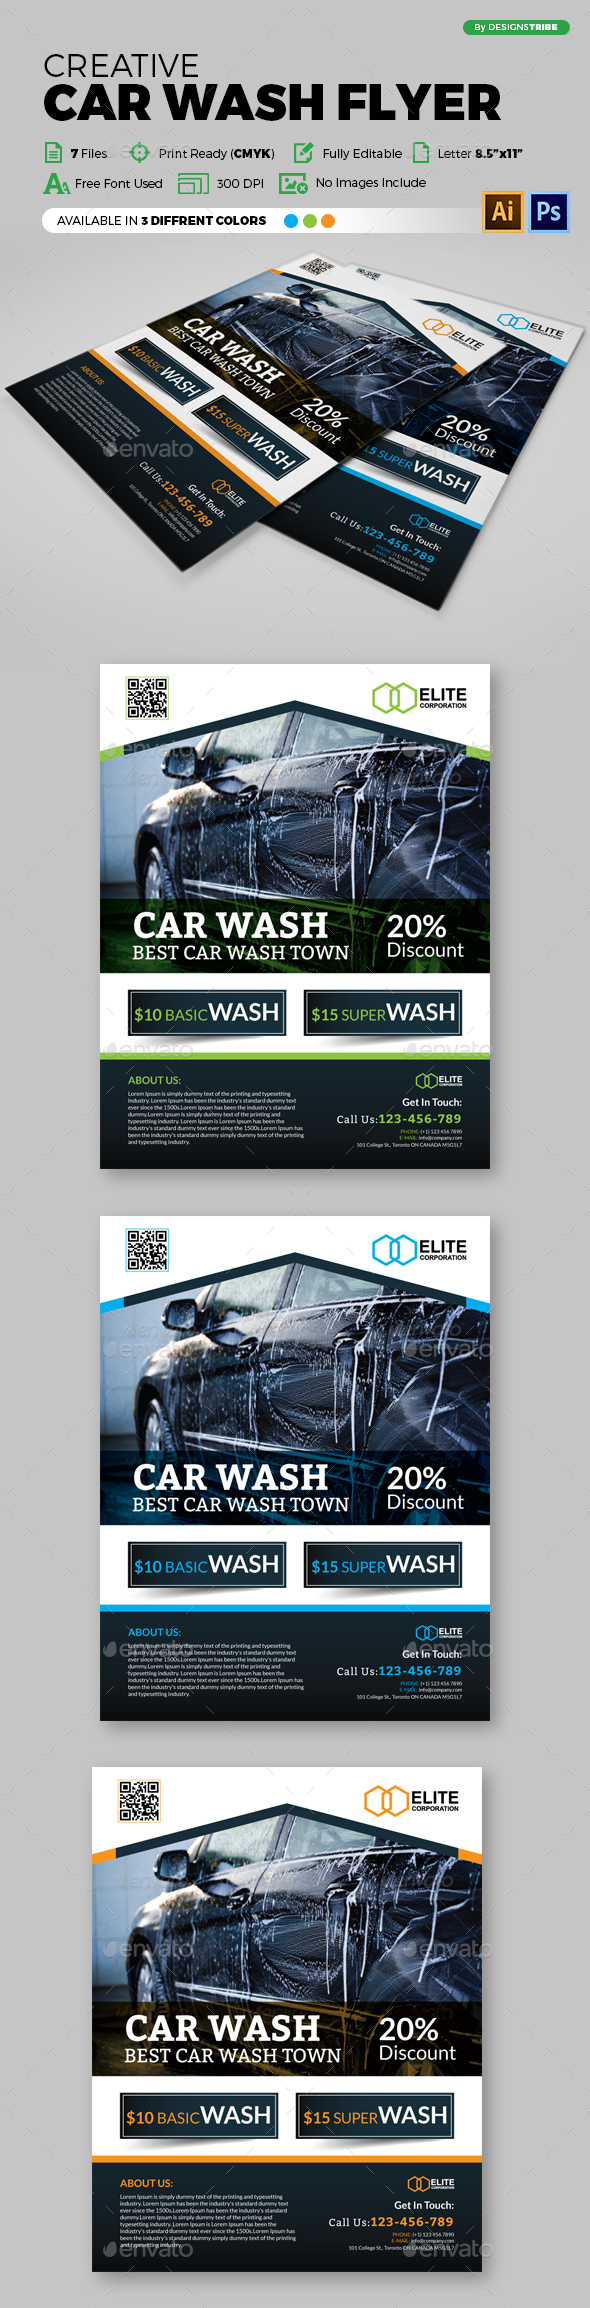 Car Wash Flyer - Flyers Print Templates